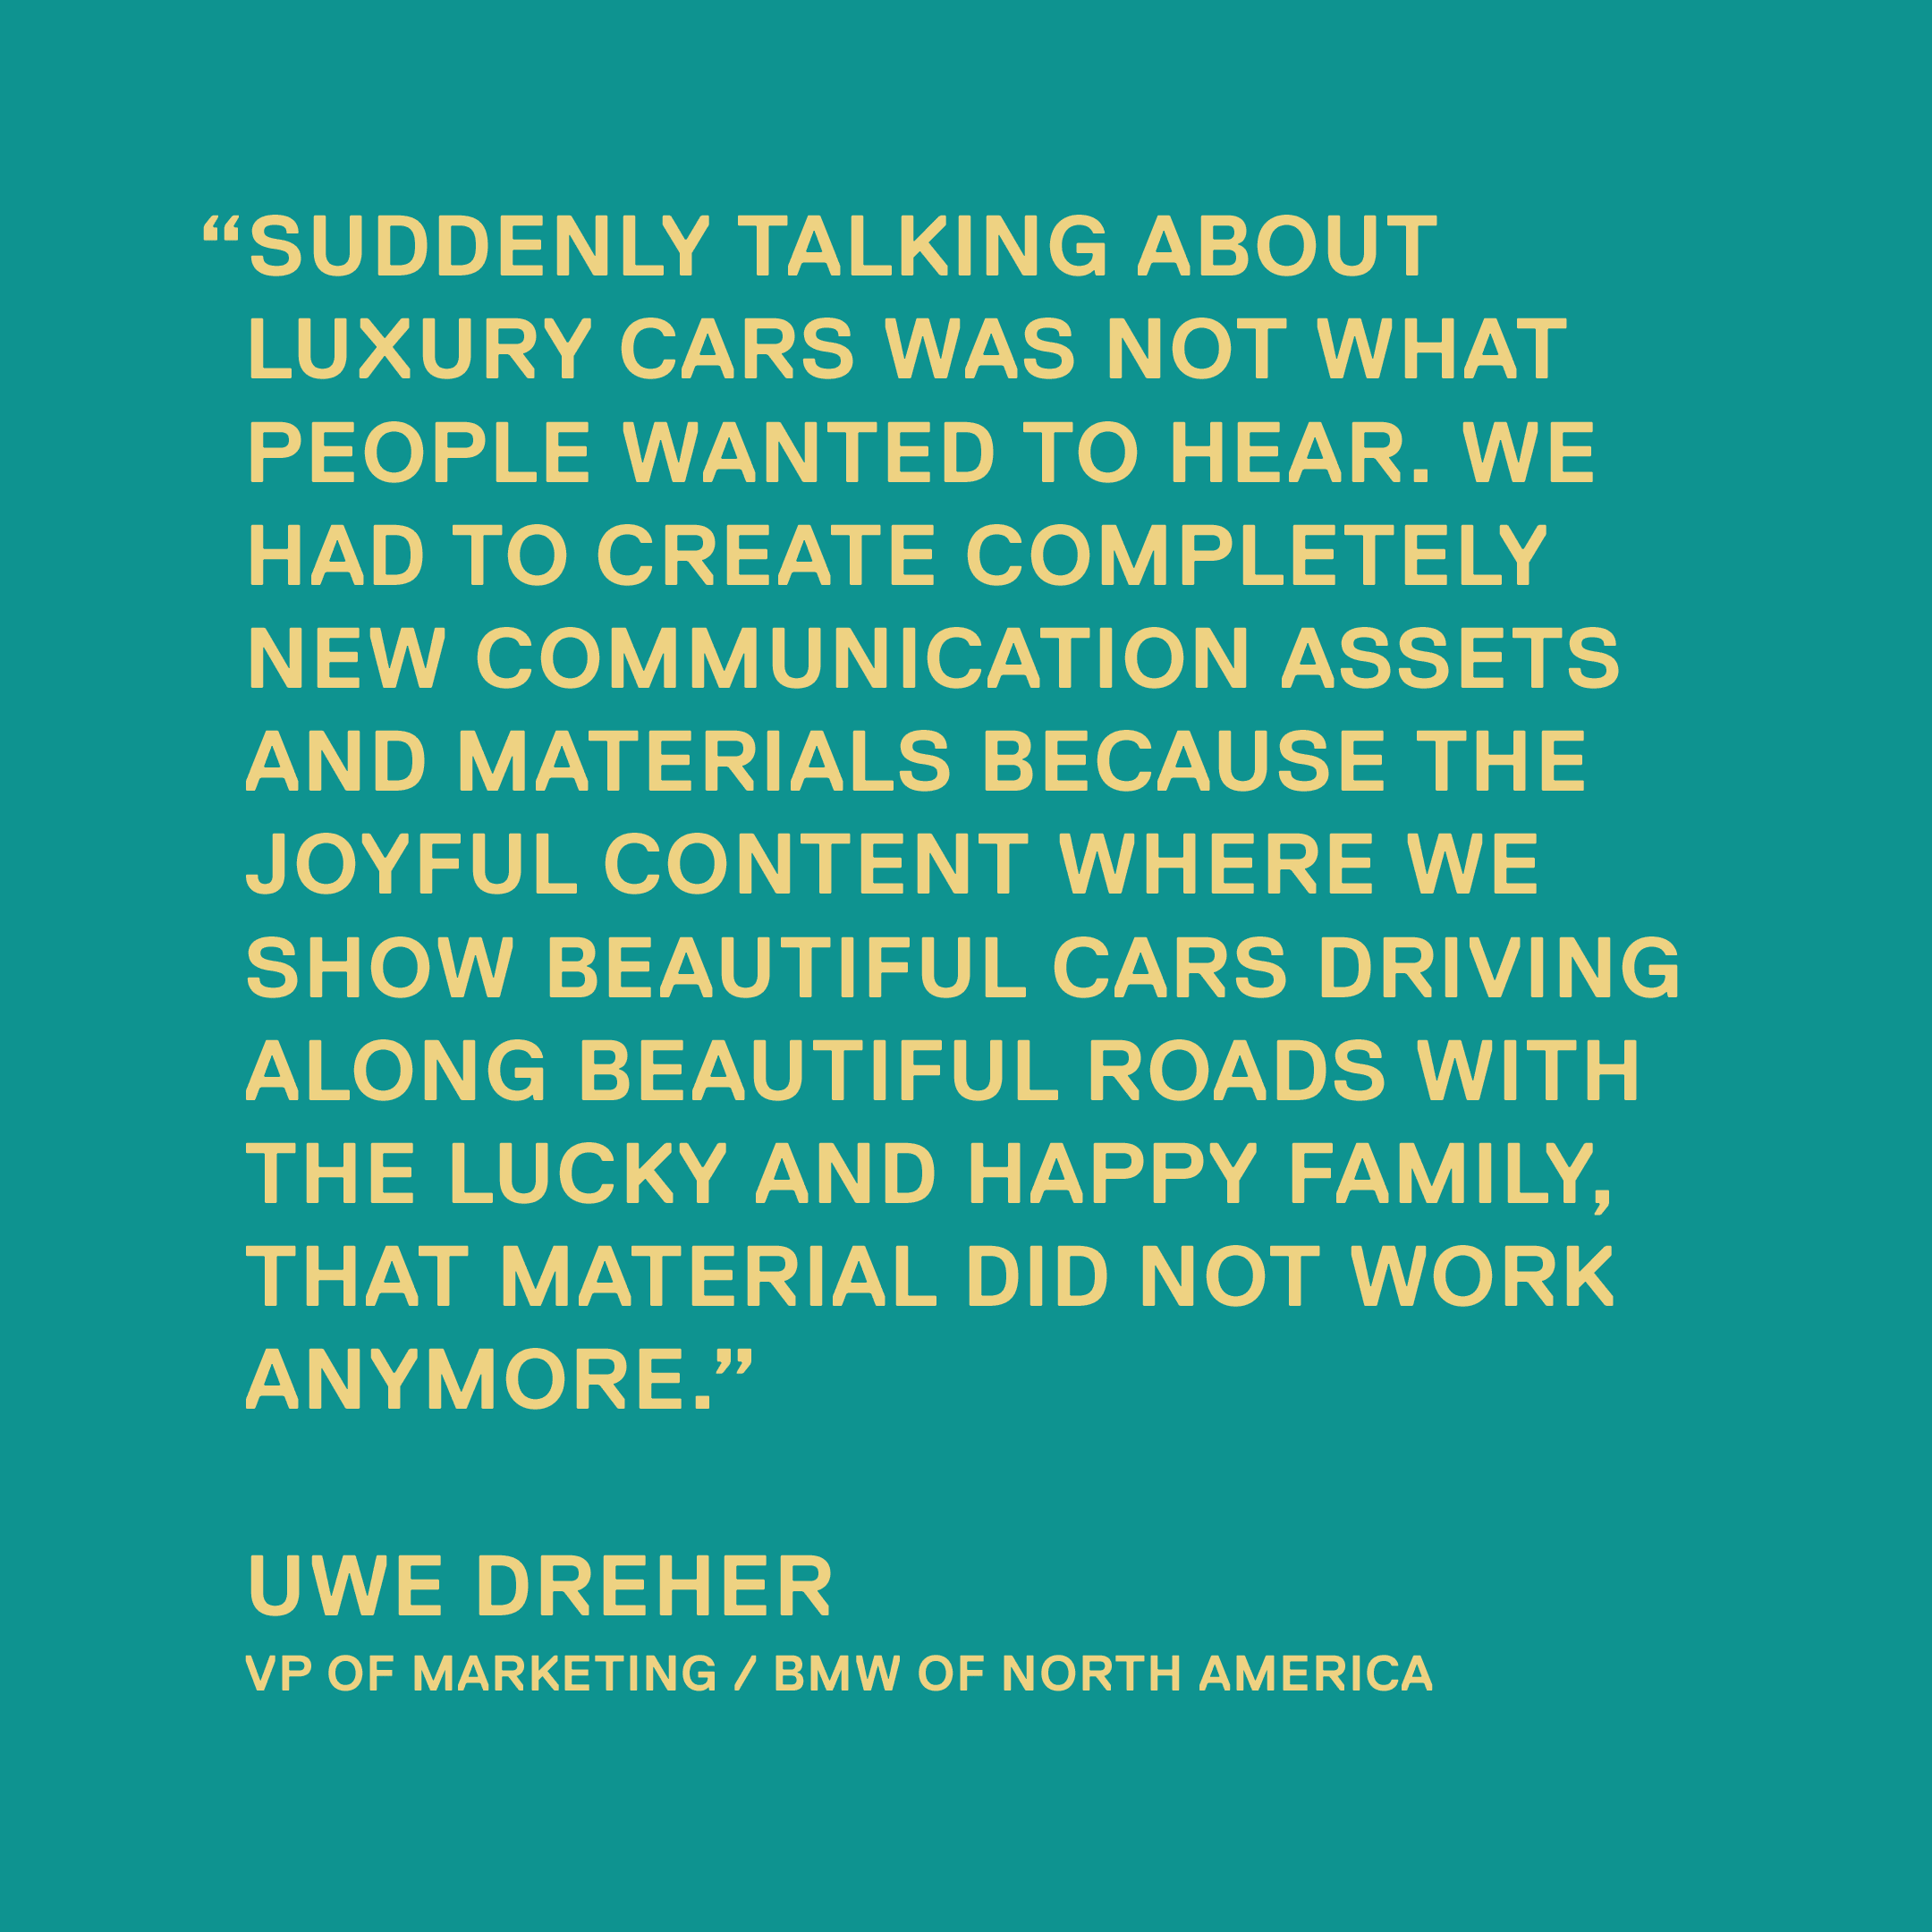 Suddenly talking about luxury cars was not what people wanted to hear. We had to create completely new communication assets and materials because the joyful content where we show beautiful cars driving along beautiful roads with the lucky and happy family, that material did not work anymore. — Uwe Dreher, VP of Marketing / BMW of North America